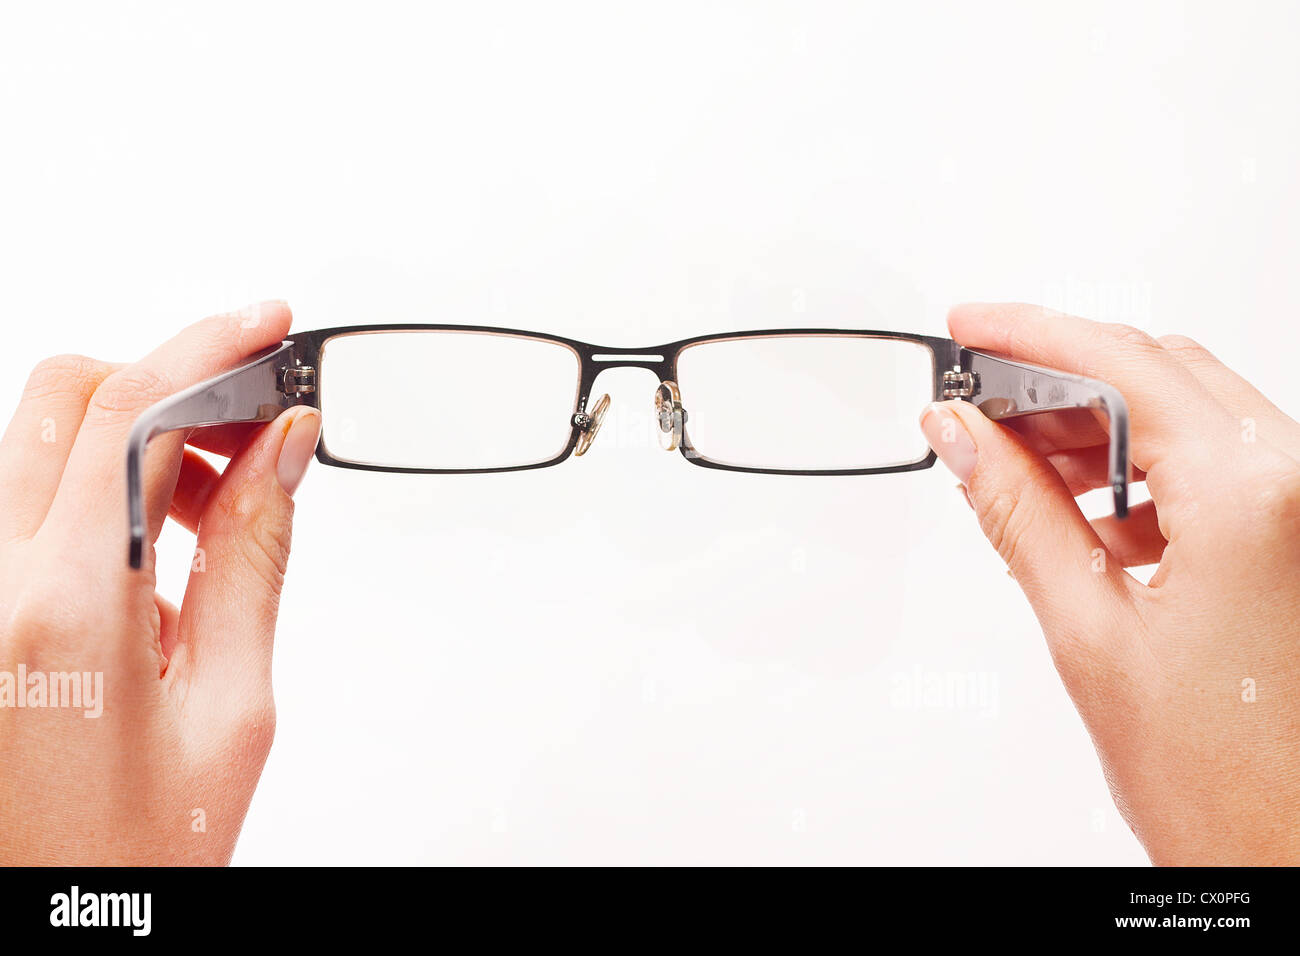 Hands holding eyeglasses on white background. - Stock Image